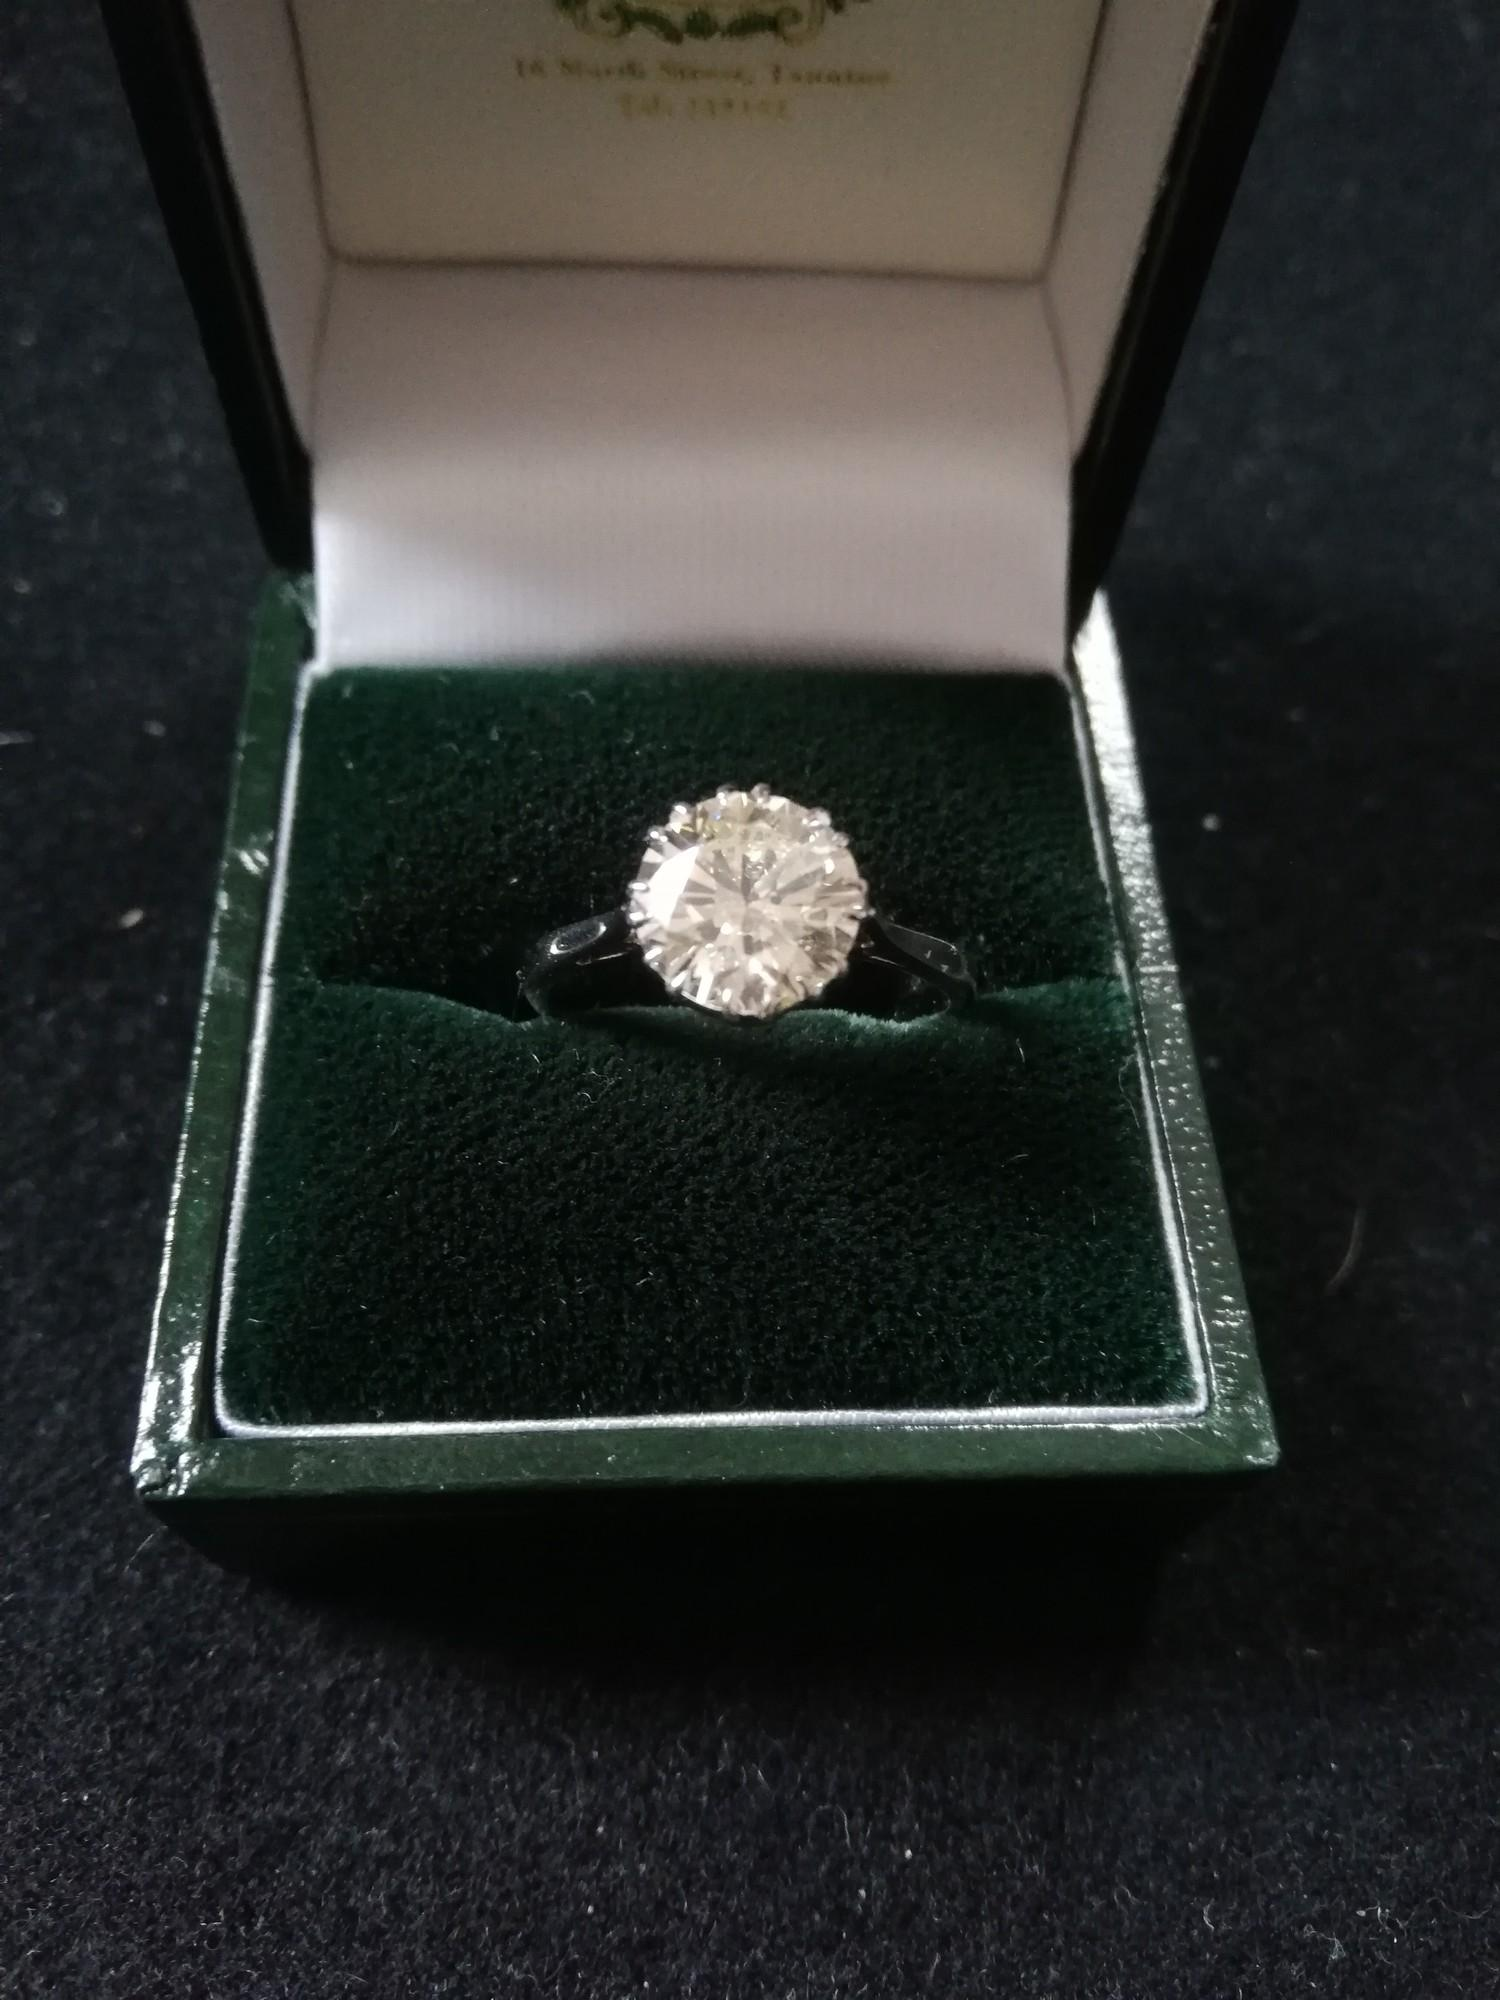 Diamond solitaire ring 2.37ct - Image 3 of 4